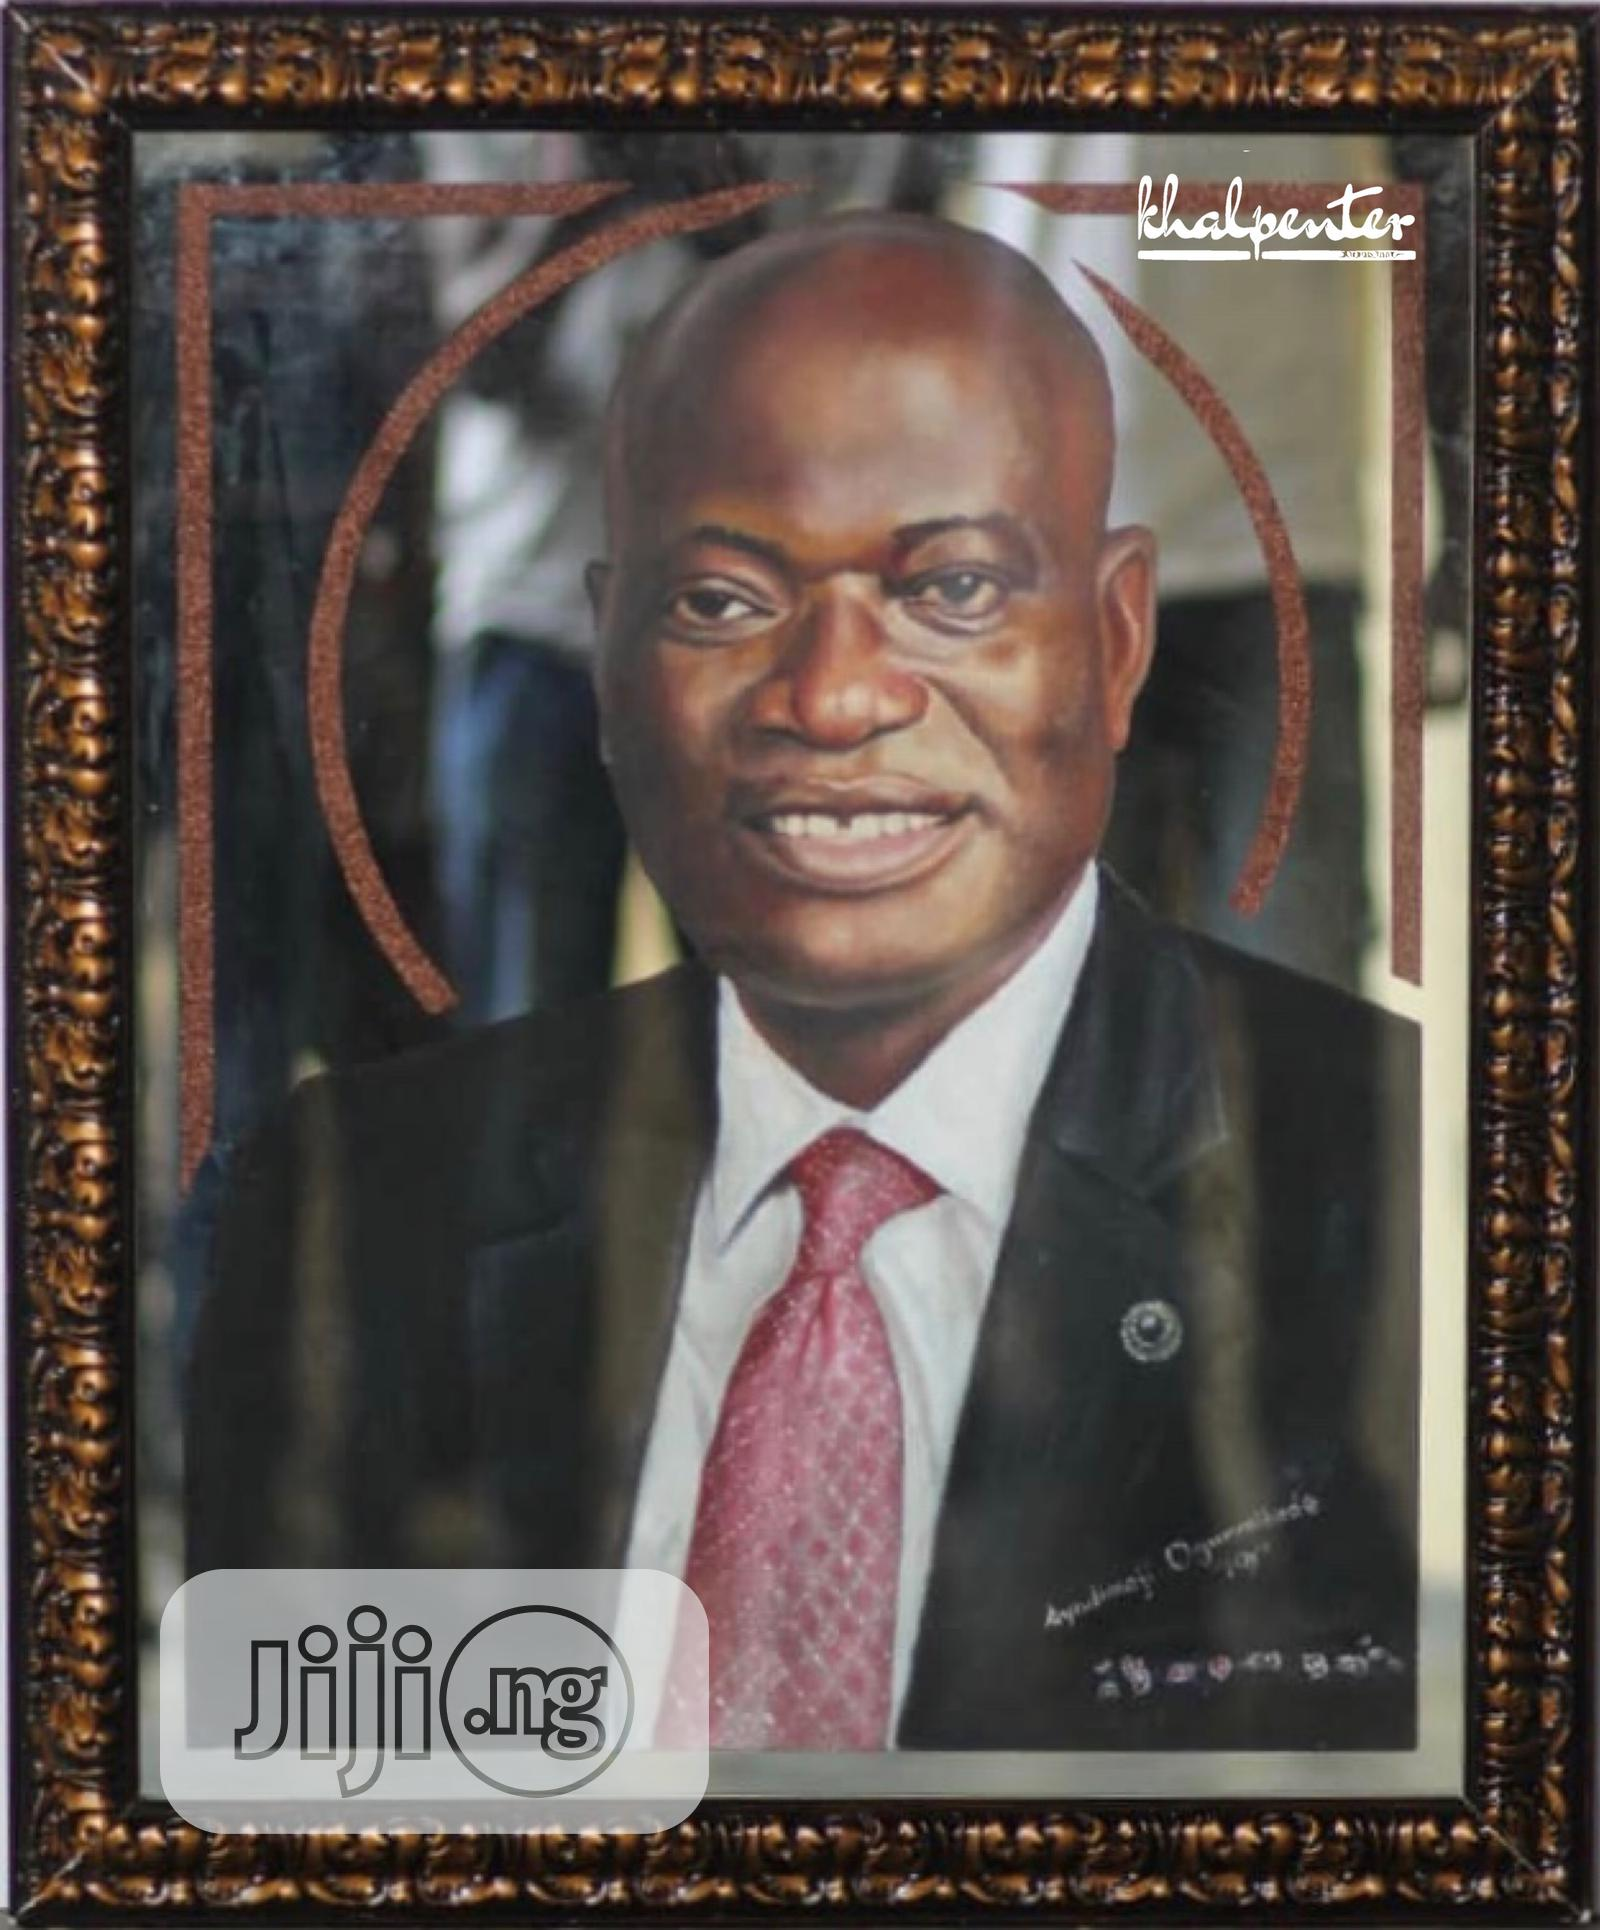 Realistic Sculpture, Painting, Pencil Portraiture. | Arts & Crafts for sale in Amuwo-Odofin, Lagos State, Nigeria